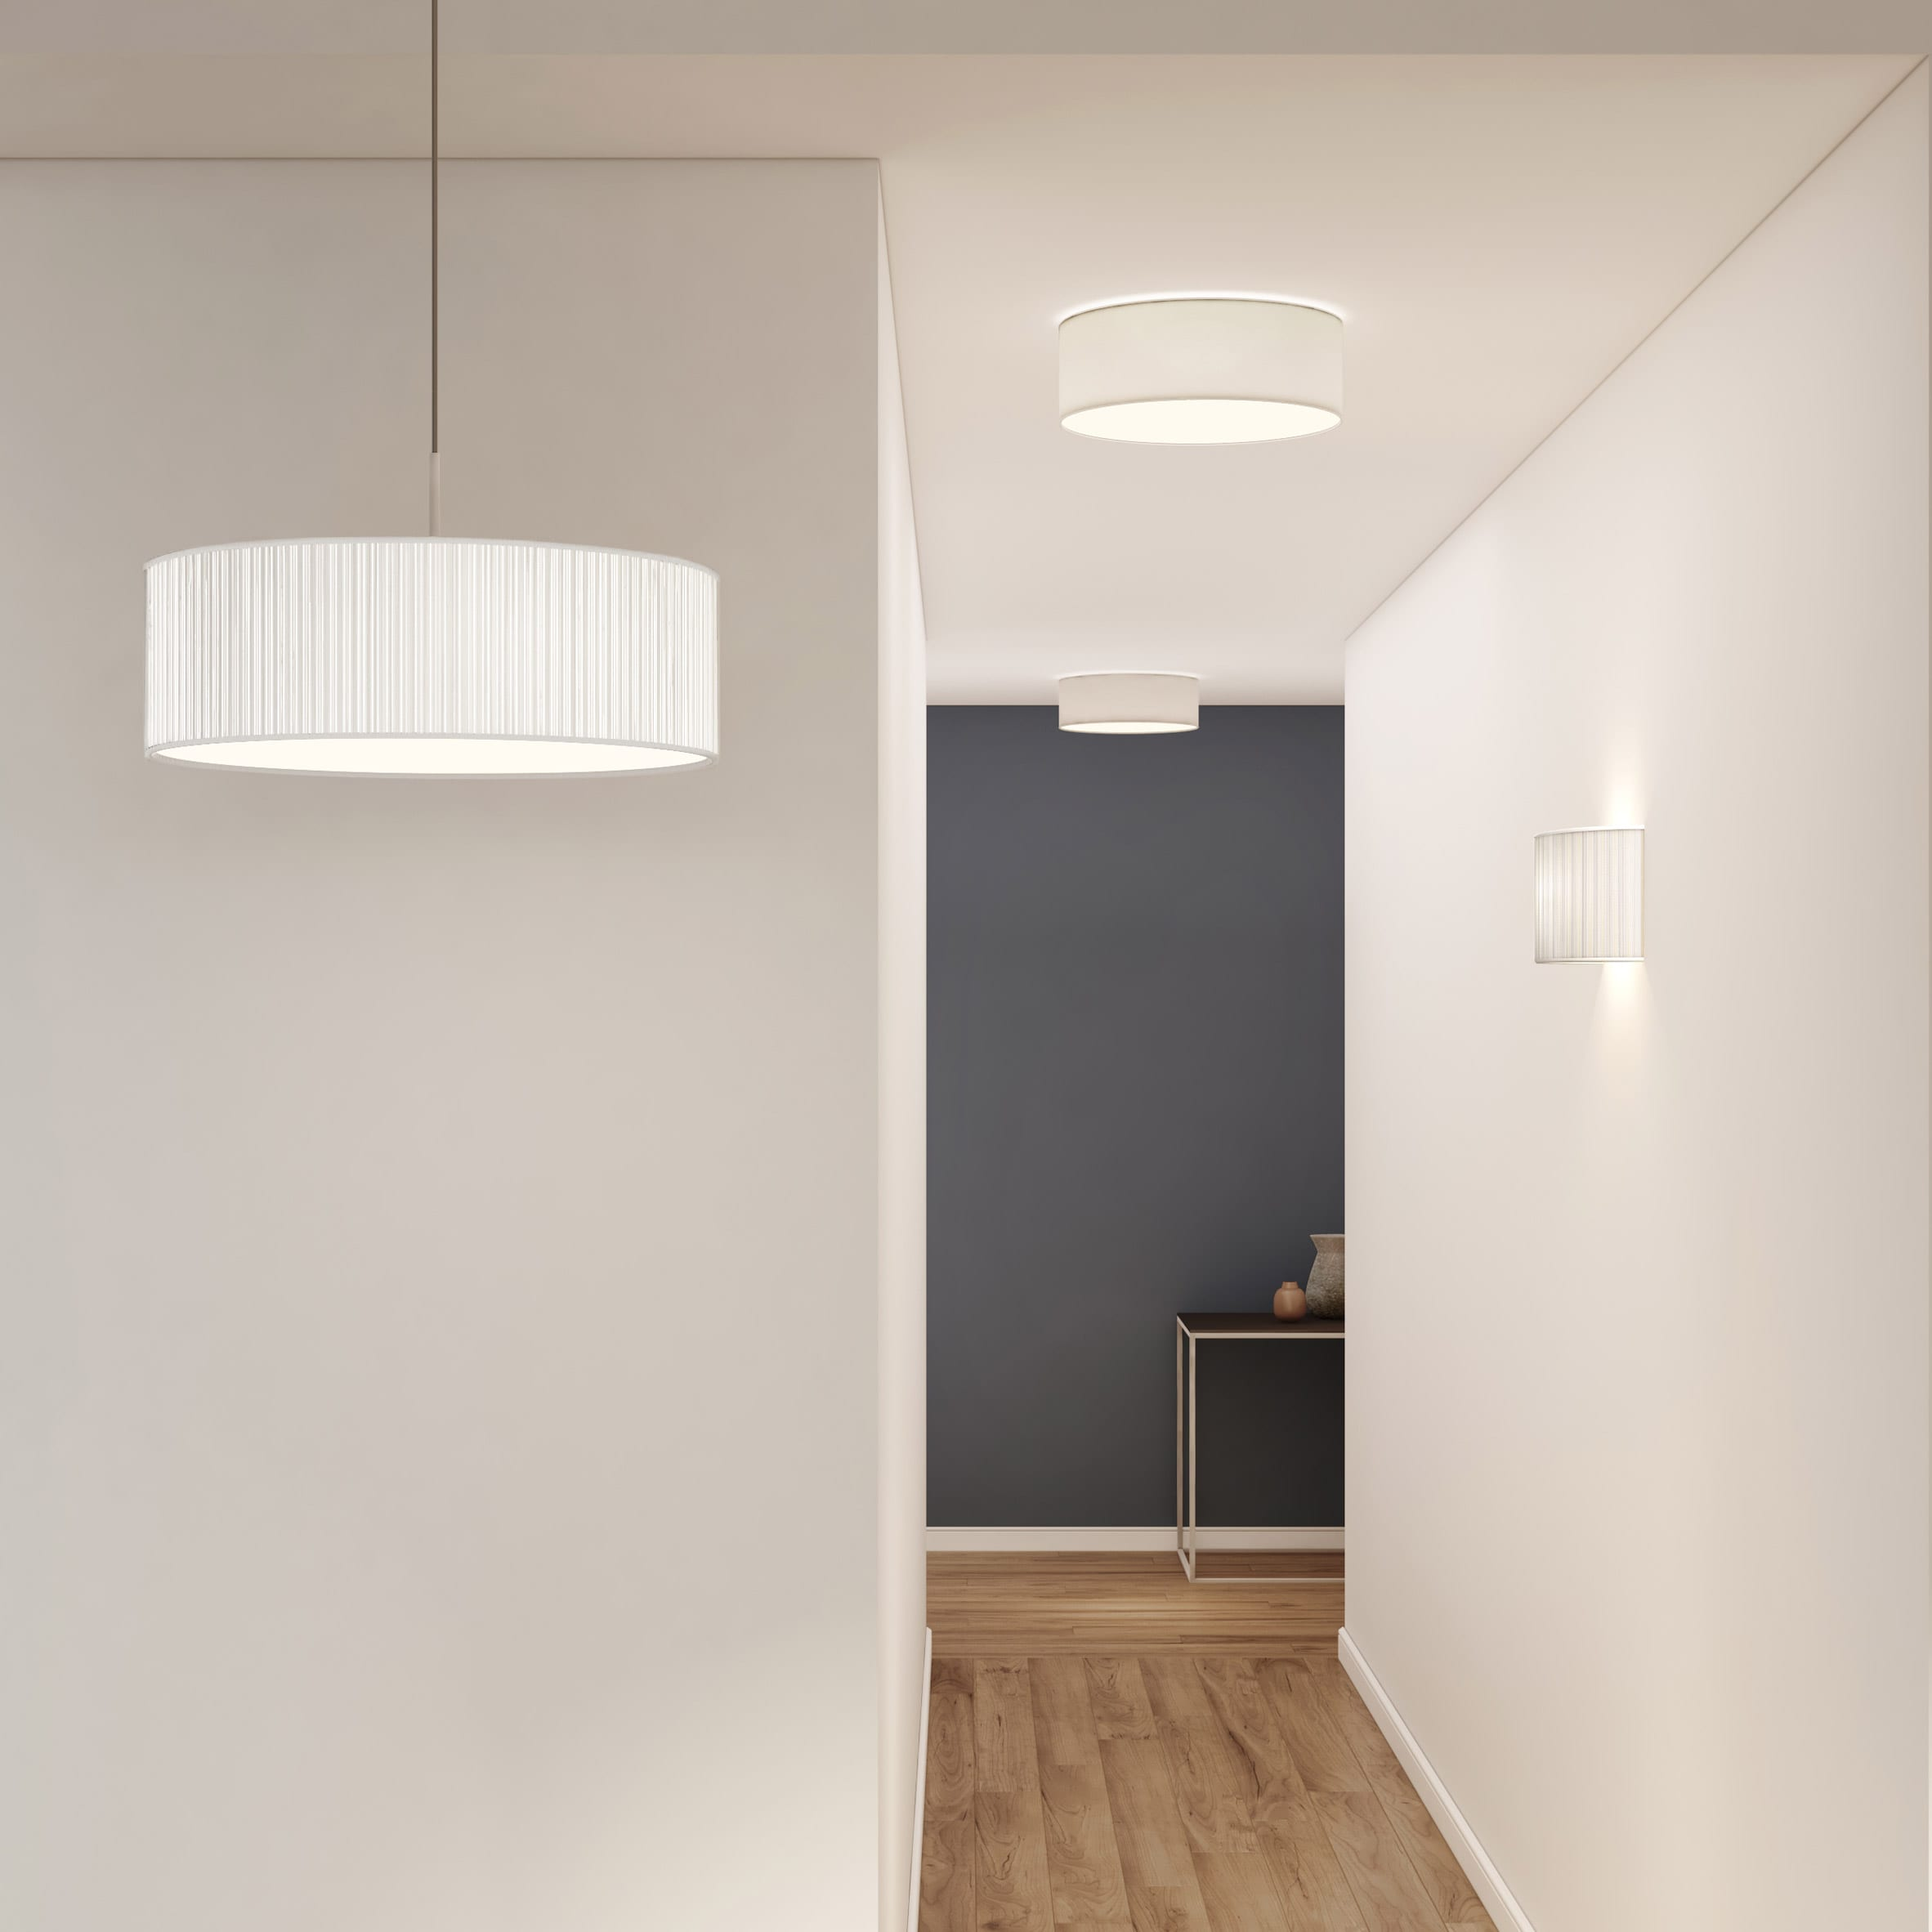 Cambria lighting range by Astro Lighting including pendant light, ceiling light and wall light in a domestic hallway